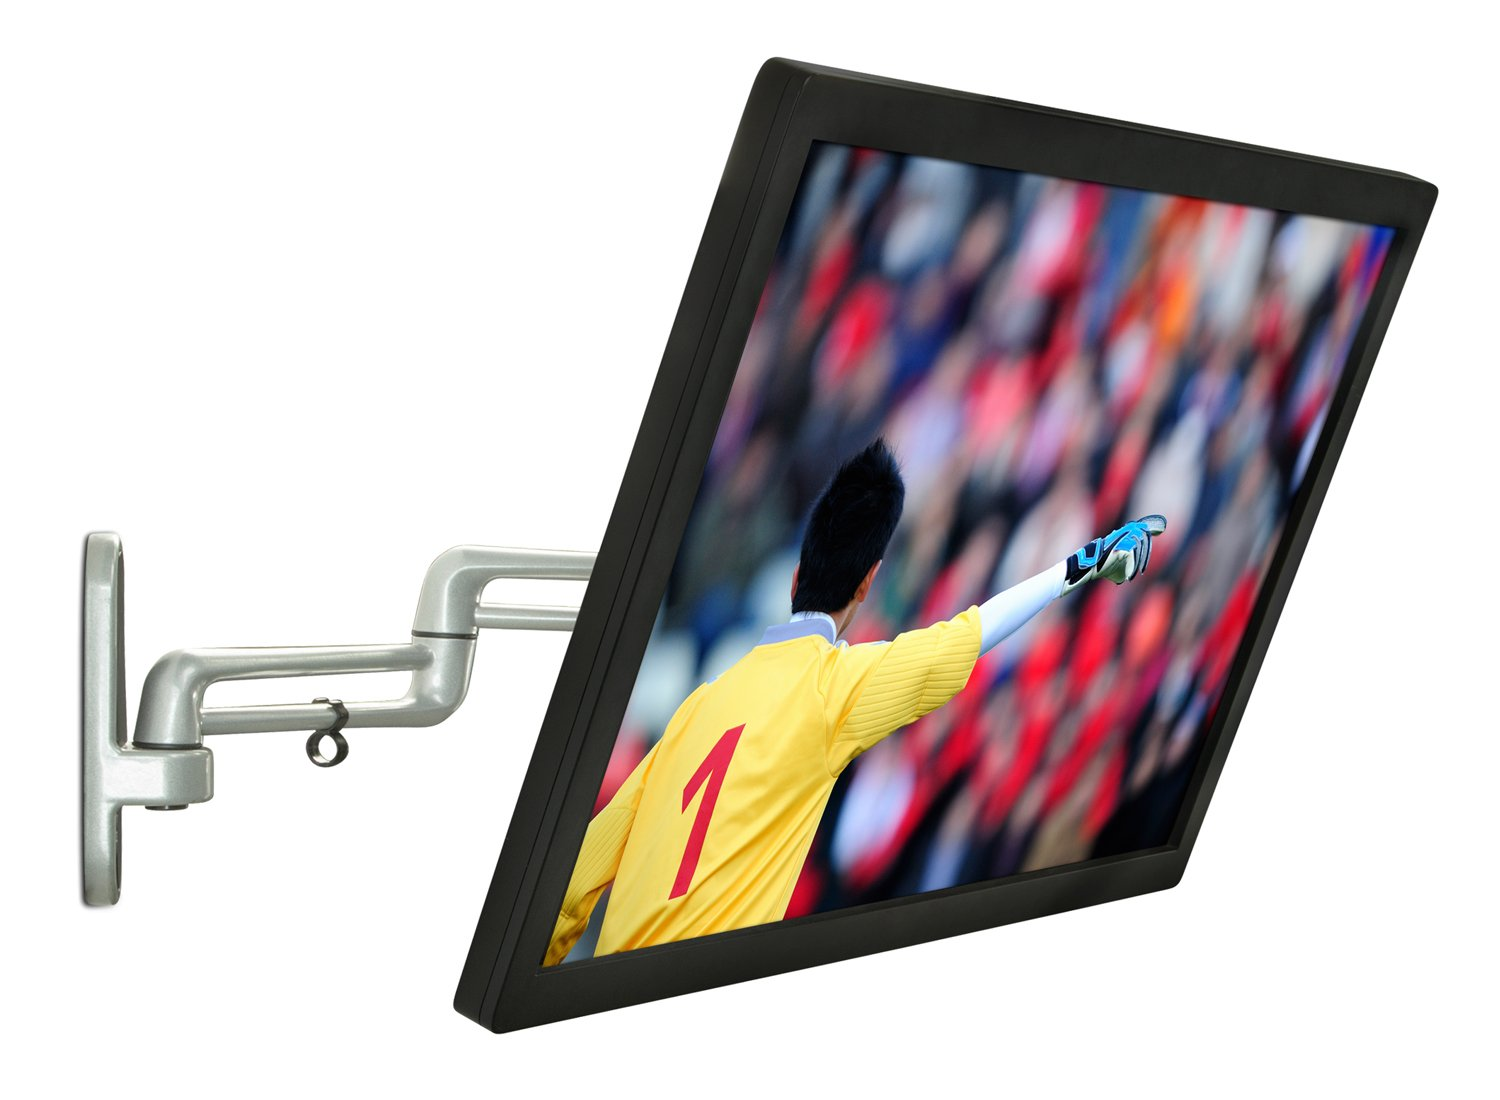 Mount-It! Full Motion Computer Monitor Wall Mount Fits TVs and Computer Screens With VESA 75 and 100 Universal Bolt Patterns, Swivel Tilt and Rotate, 33 Lbs Capacity